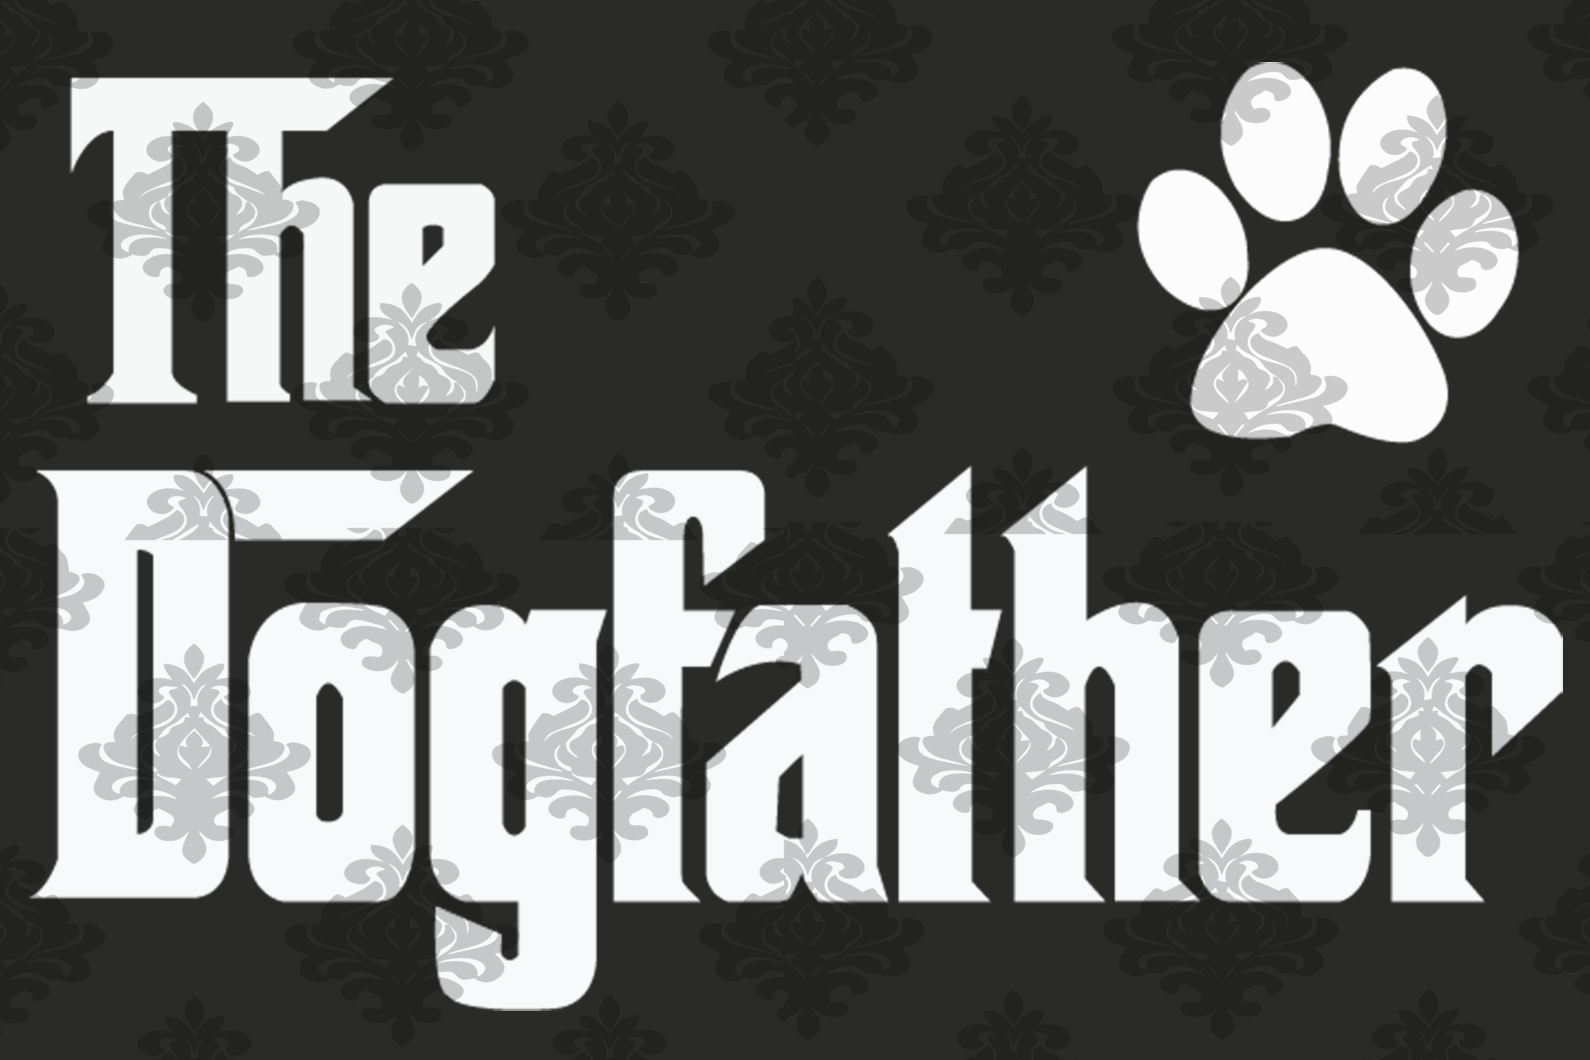 The dogfather svg,dog dad, dog dad gift, dad gift, gift for dad, love dad, lover dog, fathers day svg,gift for fathers day, dog lover gift,digital file, vinyl for cricut, svg cut files, svg clipart, silhouette svg, cricut svg files,